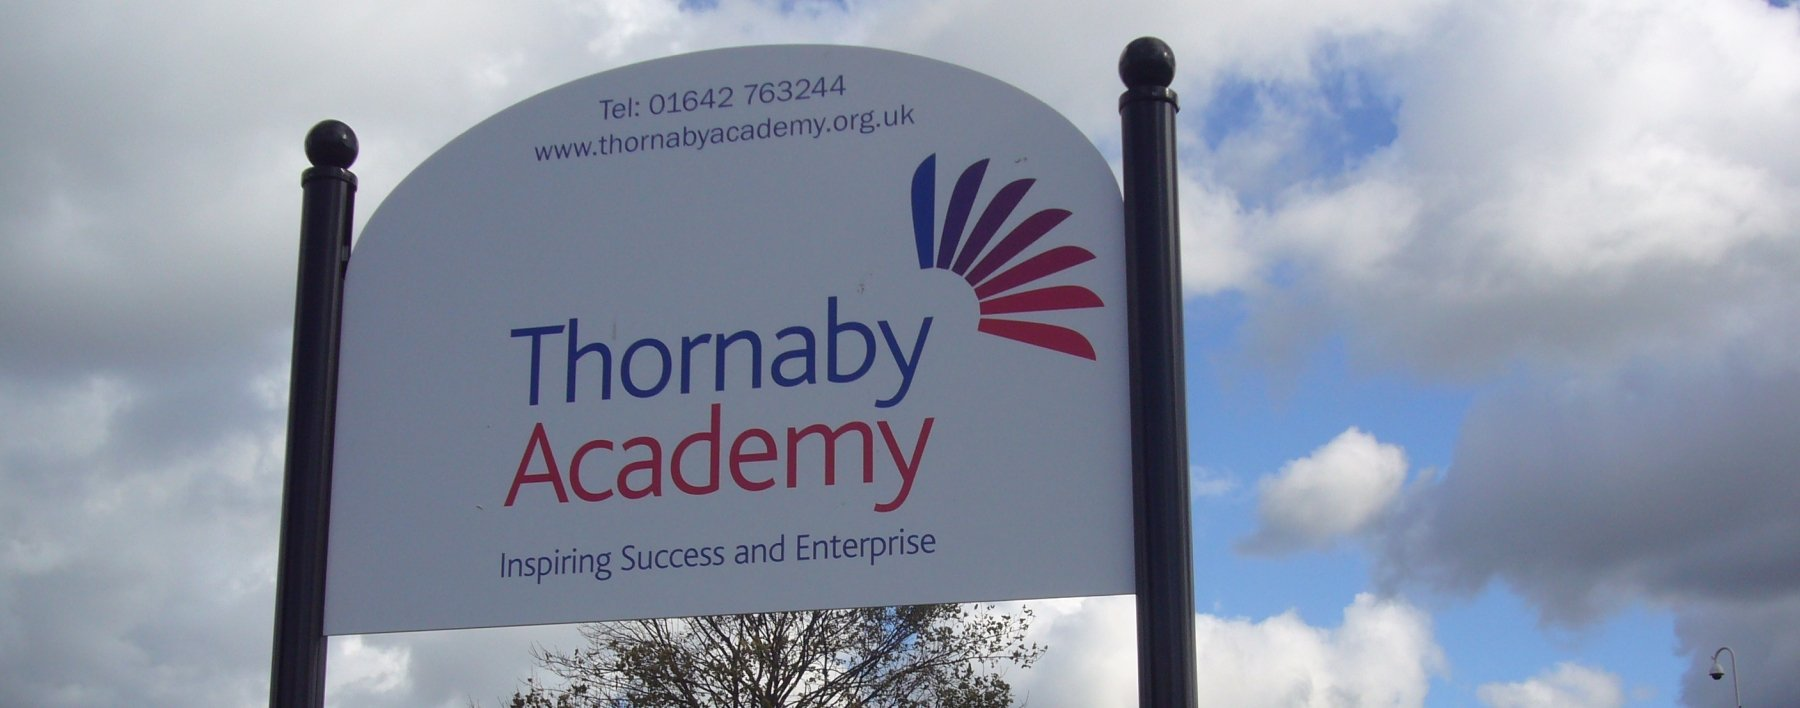 Thornaby Academy Signage by Ast Signs